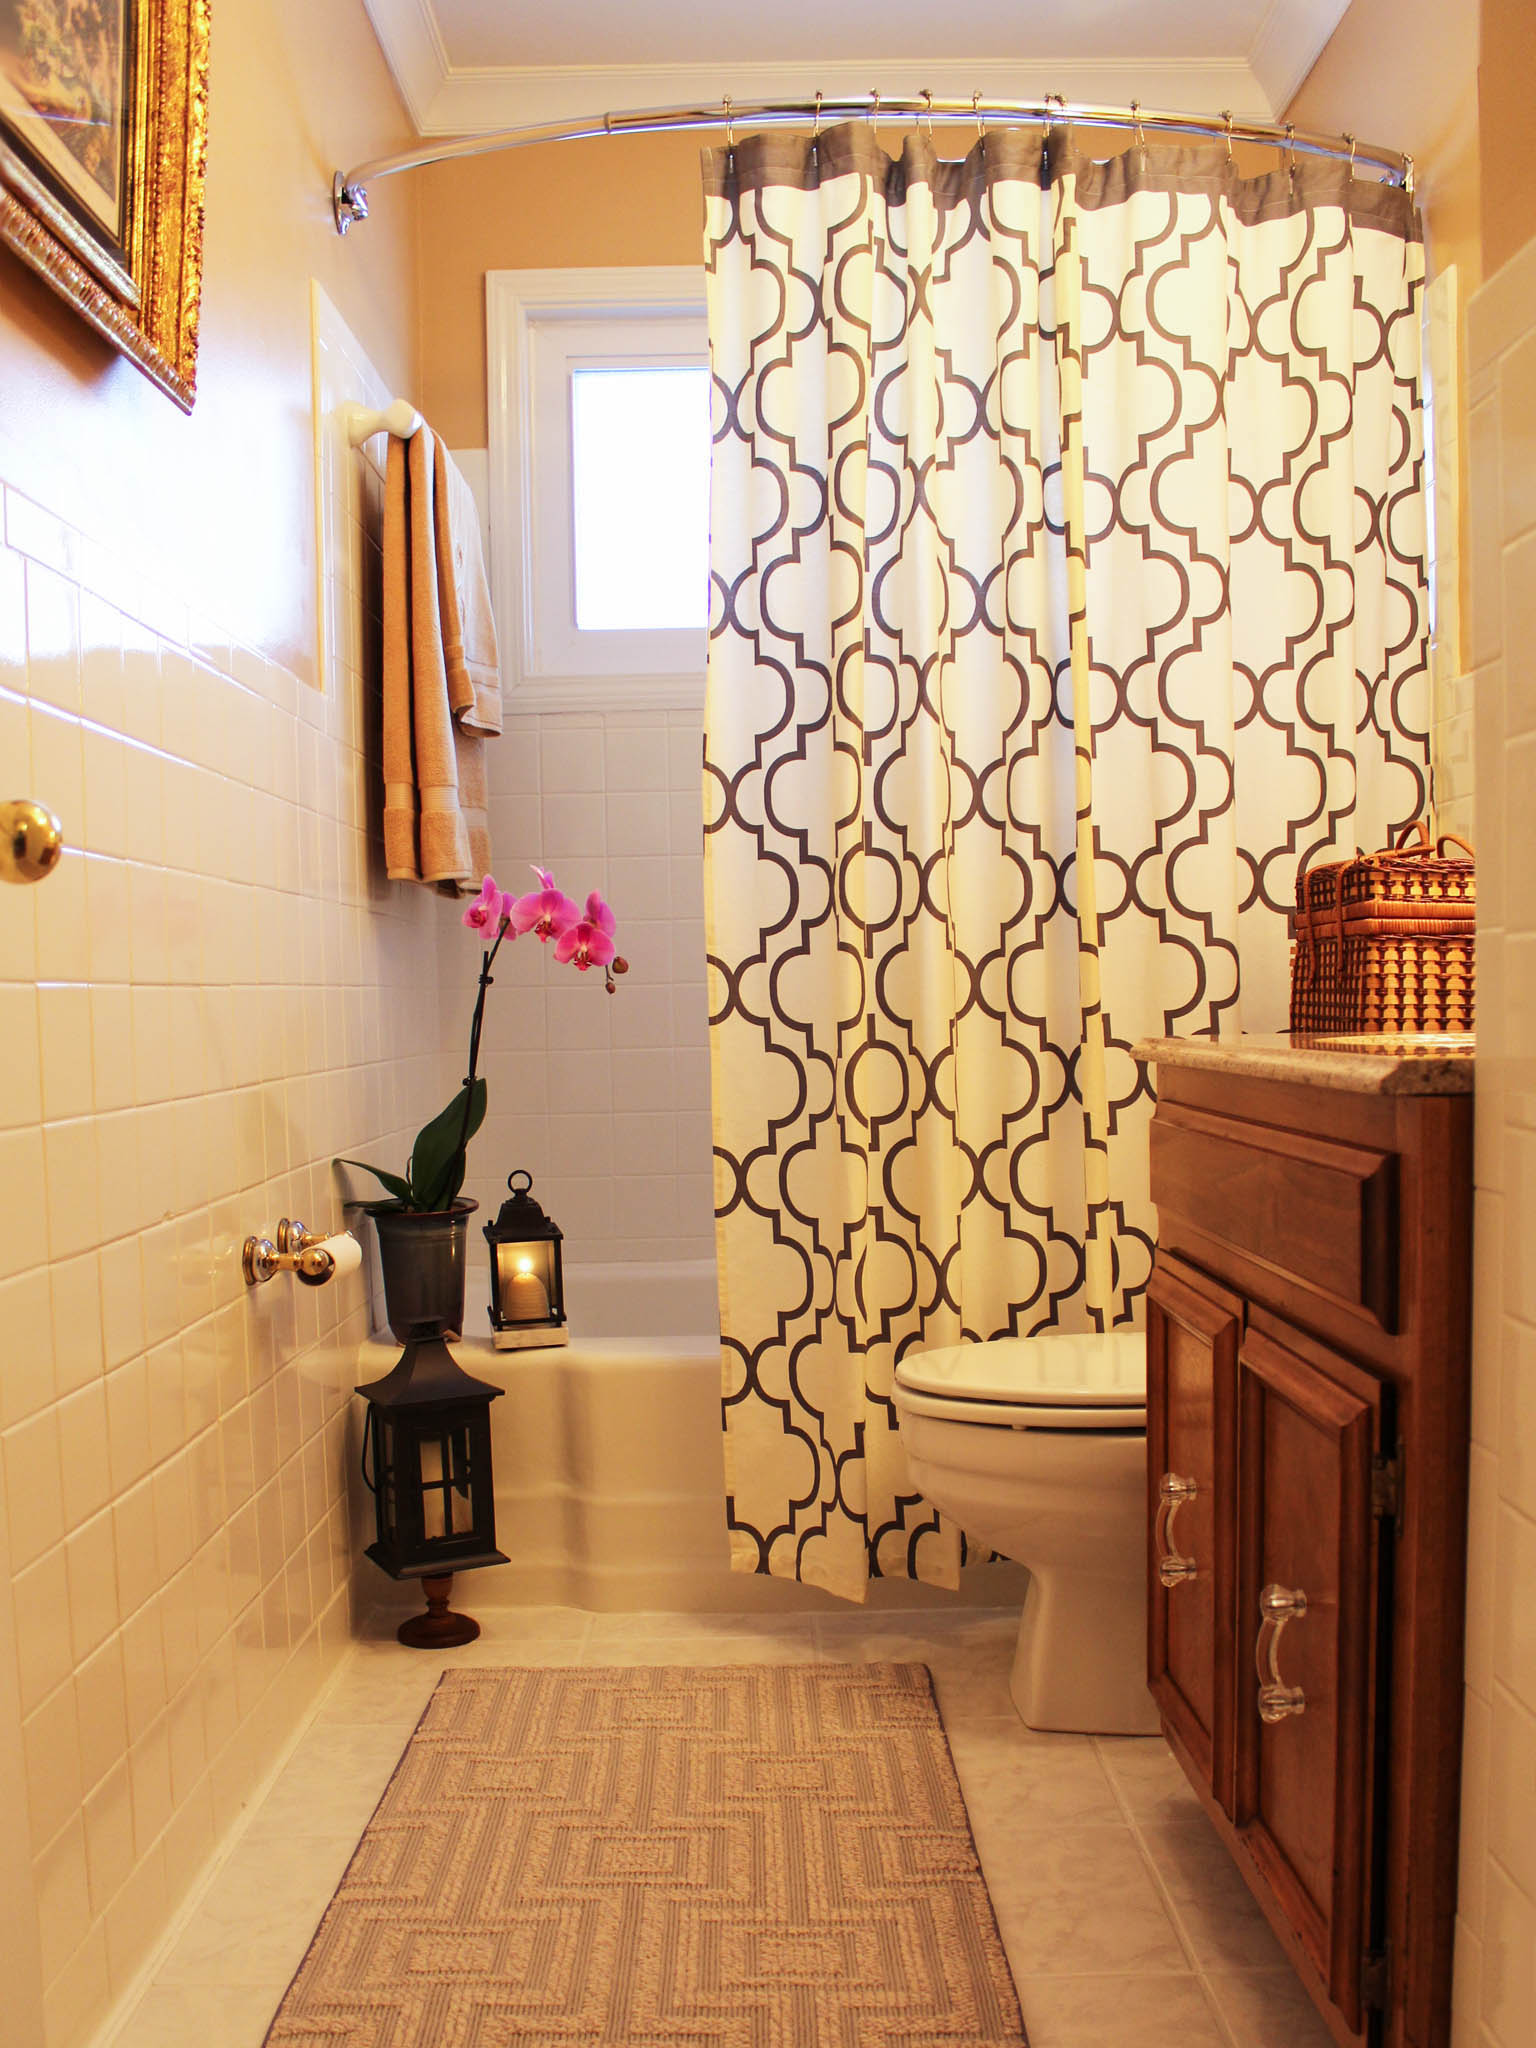 Simple Bathroom Remodel With Modern Shower Curtain (View 6 of 7)